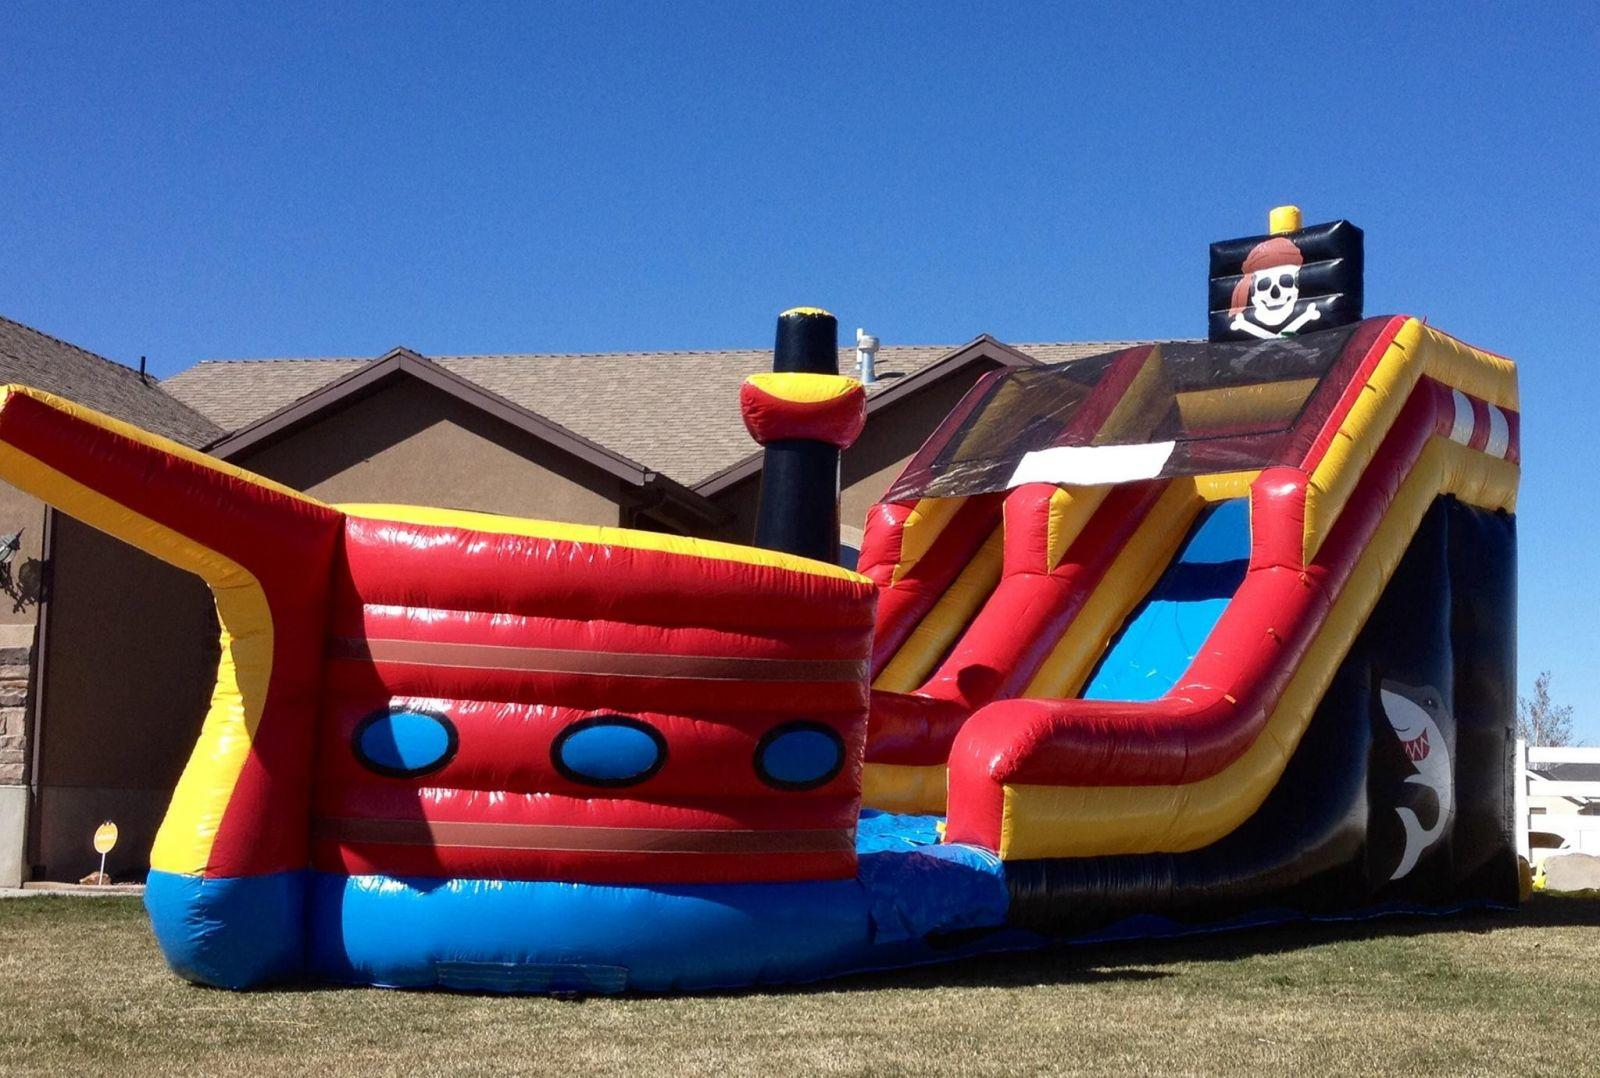 18ft Pirate Ship Slide in Tooele County Utah